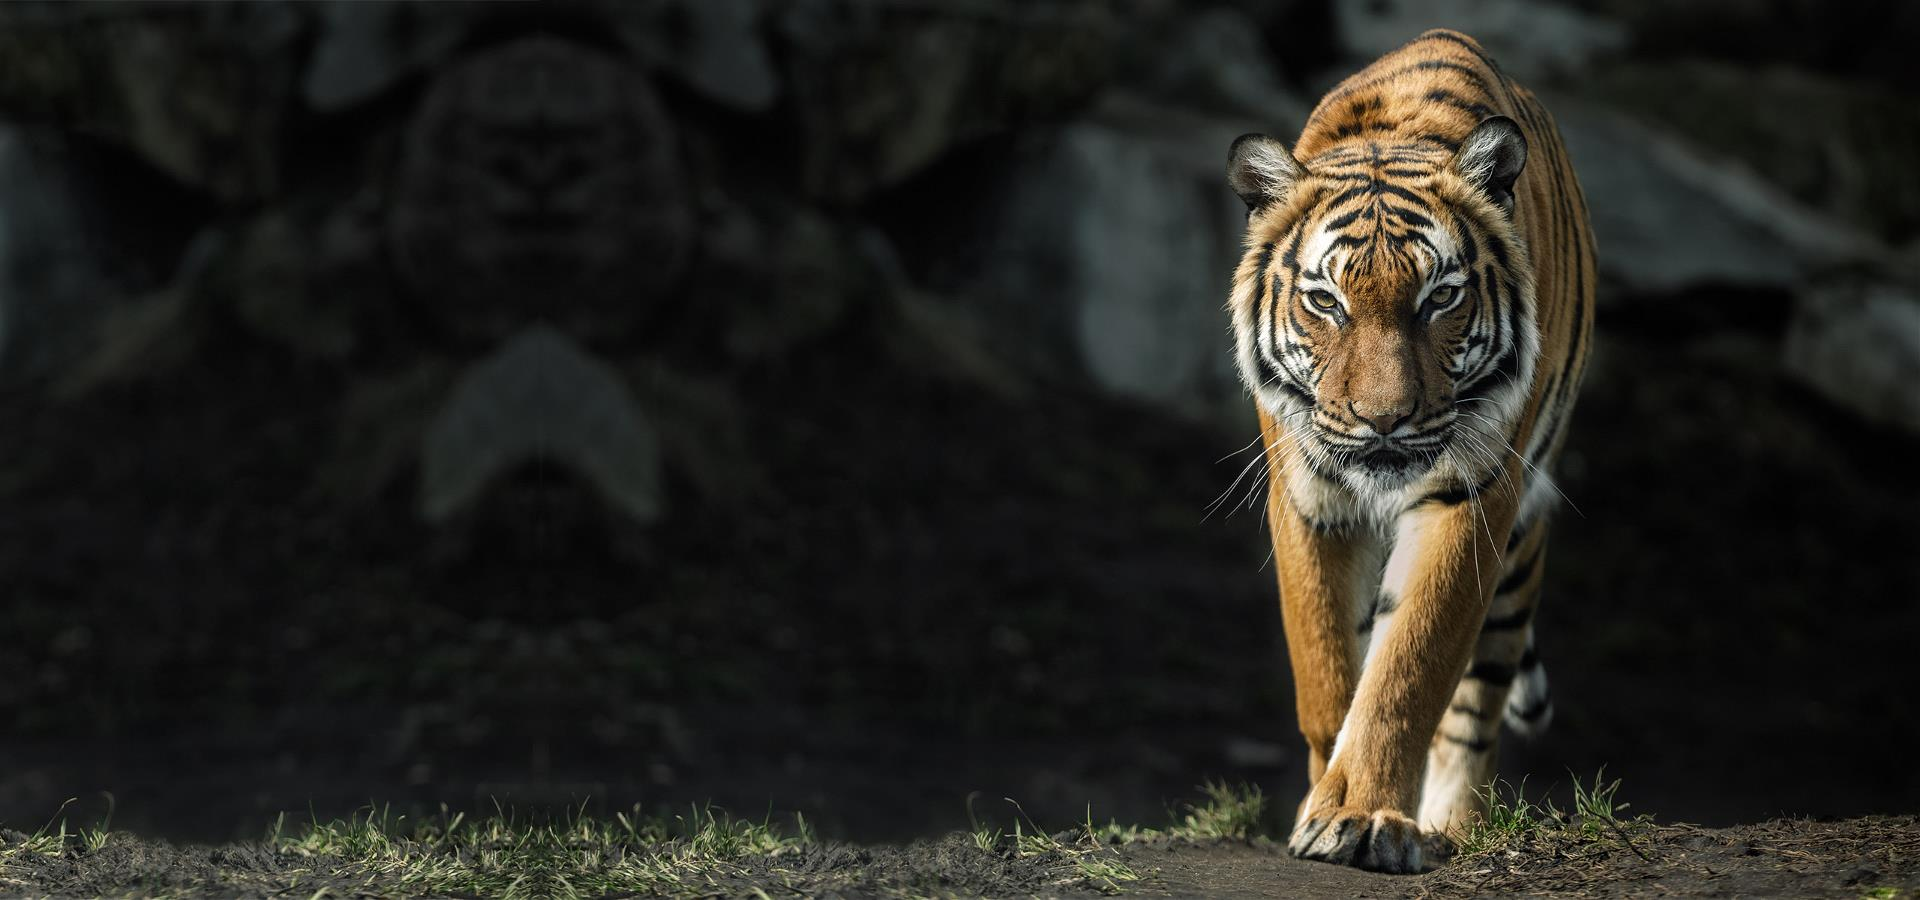 Tiger walking across some grass with a black background